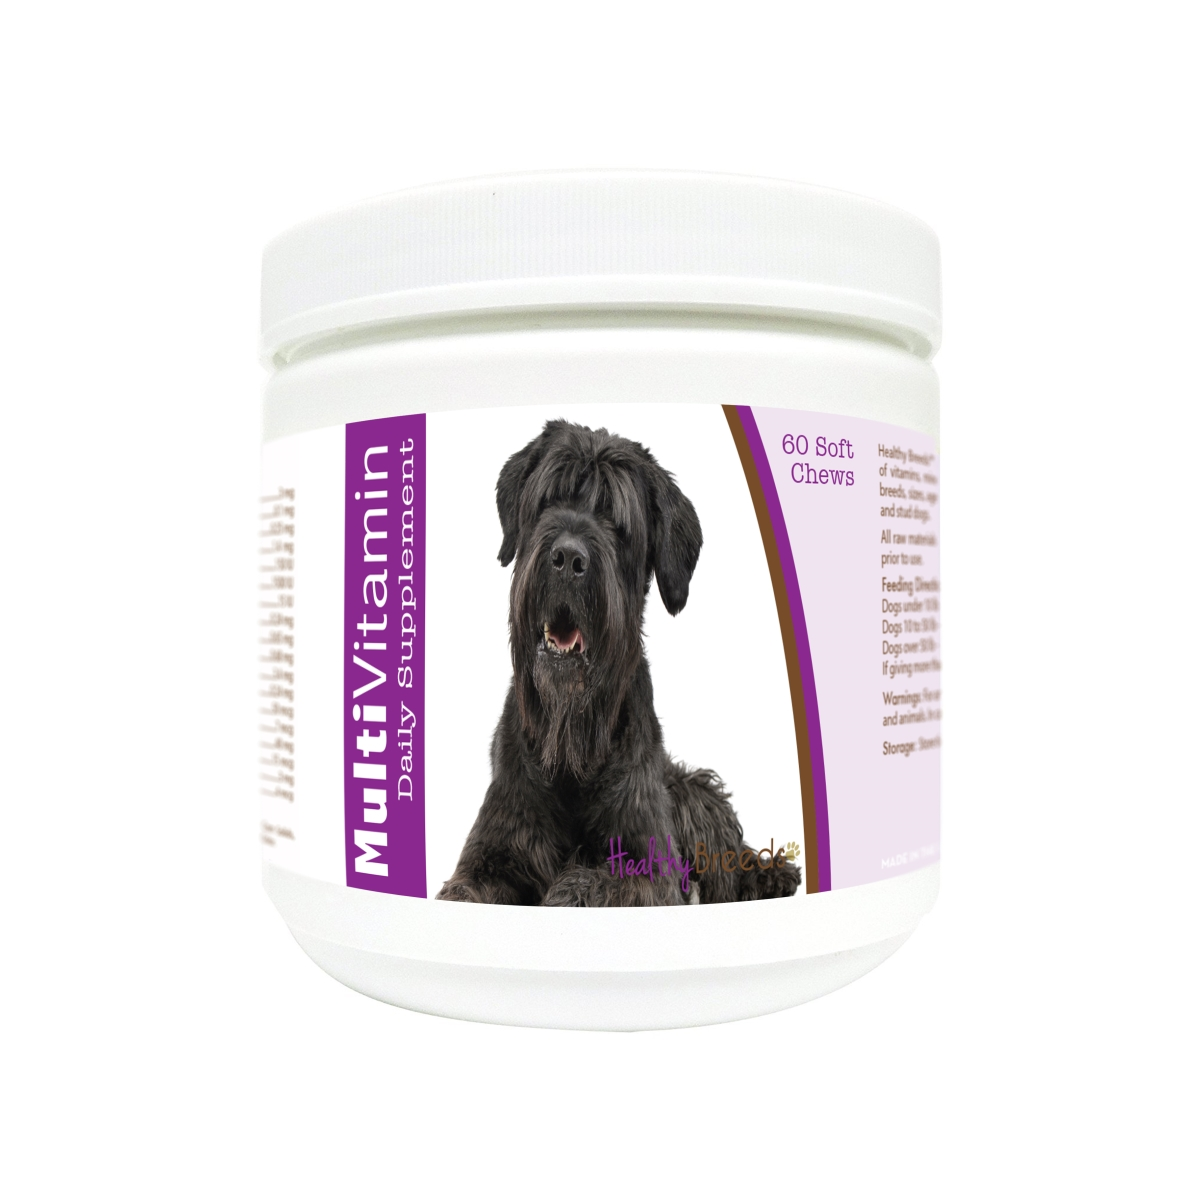 Healthy Breeds 840235175674 Black Russian Terrier Multi-Vitamin Soft Chews - 60 Count